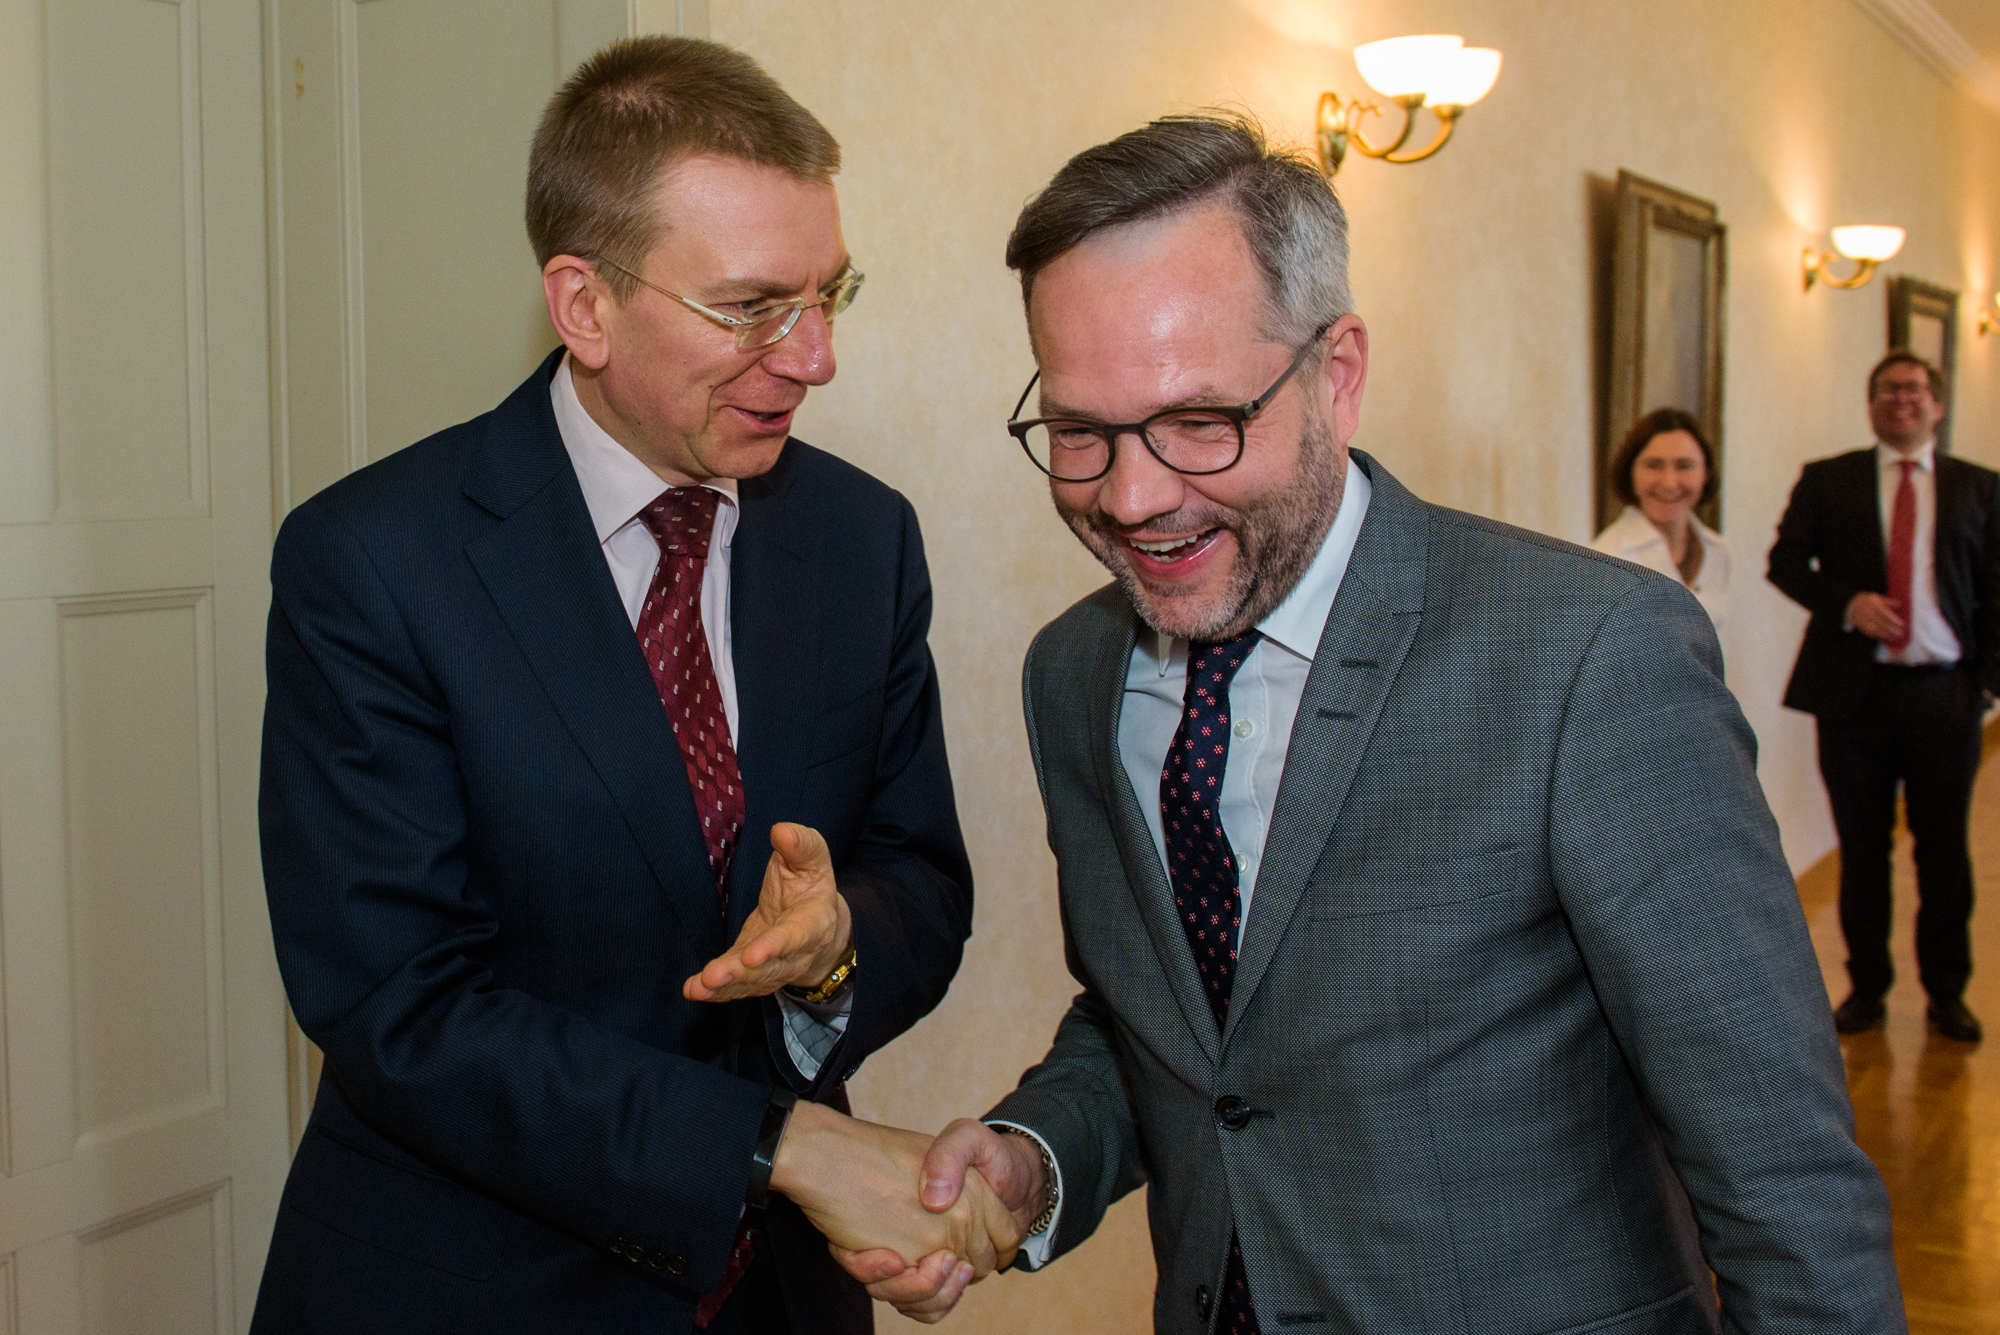 16.03.2017. Mr. Michael Roth meets with minister of Foreign Affairs of Latvia Edgars Rinkevics.